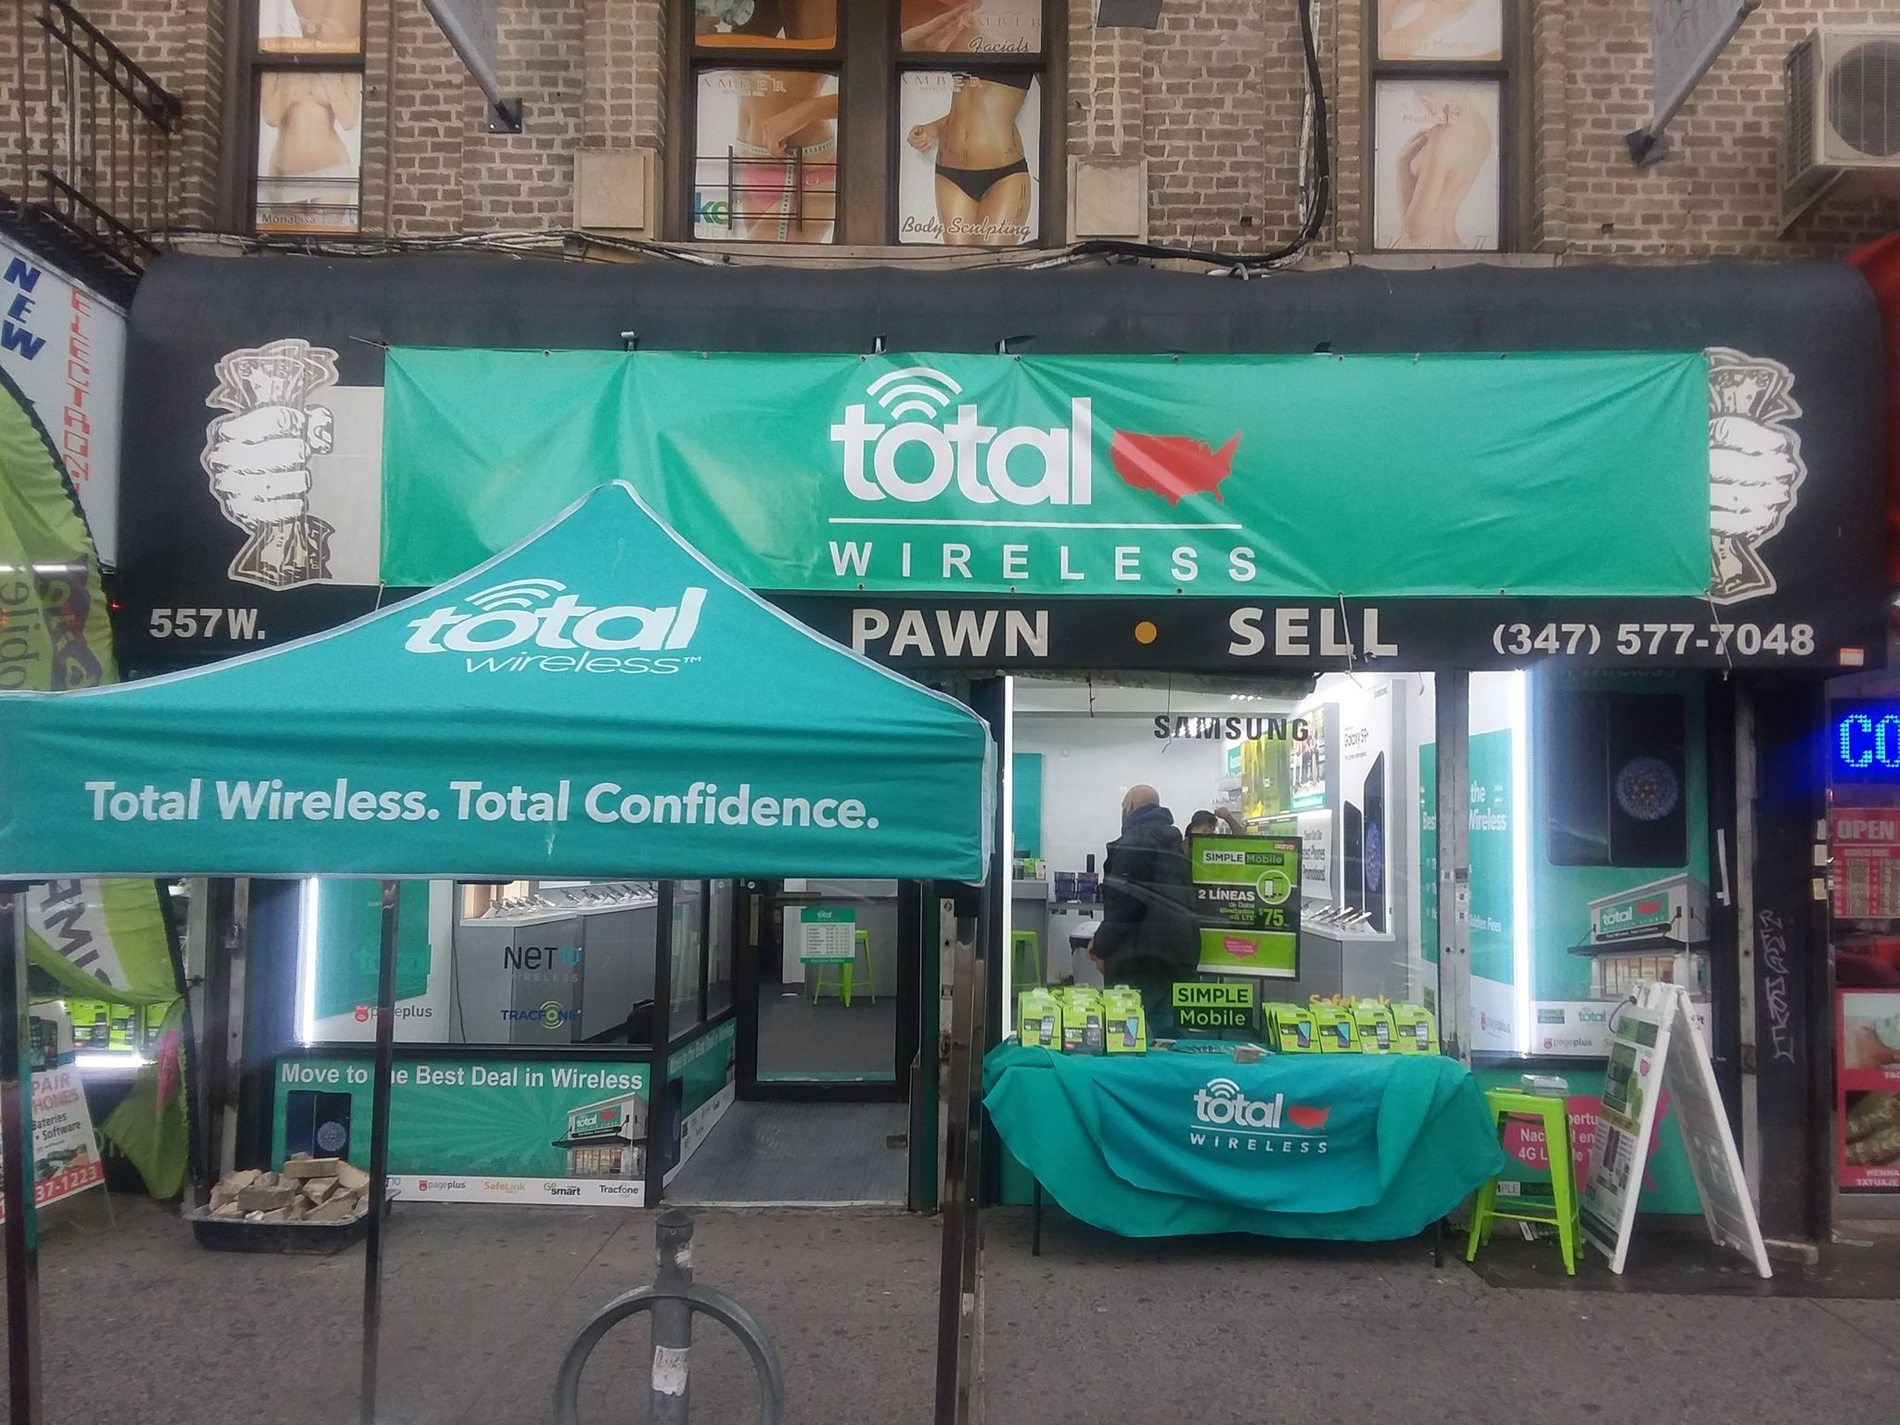 Total Wireless Store front image in New York,  NY